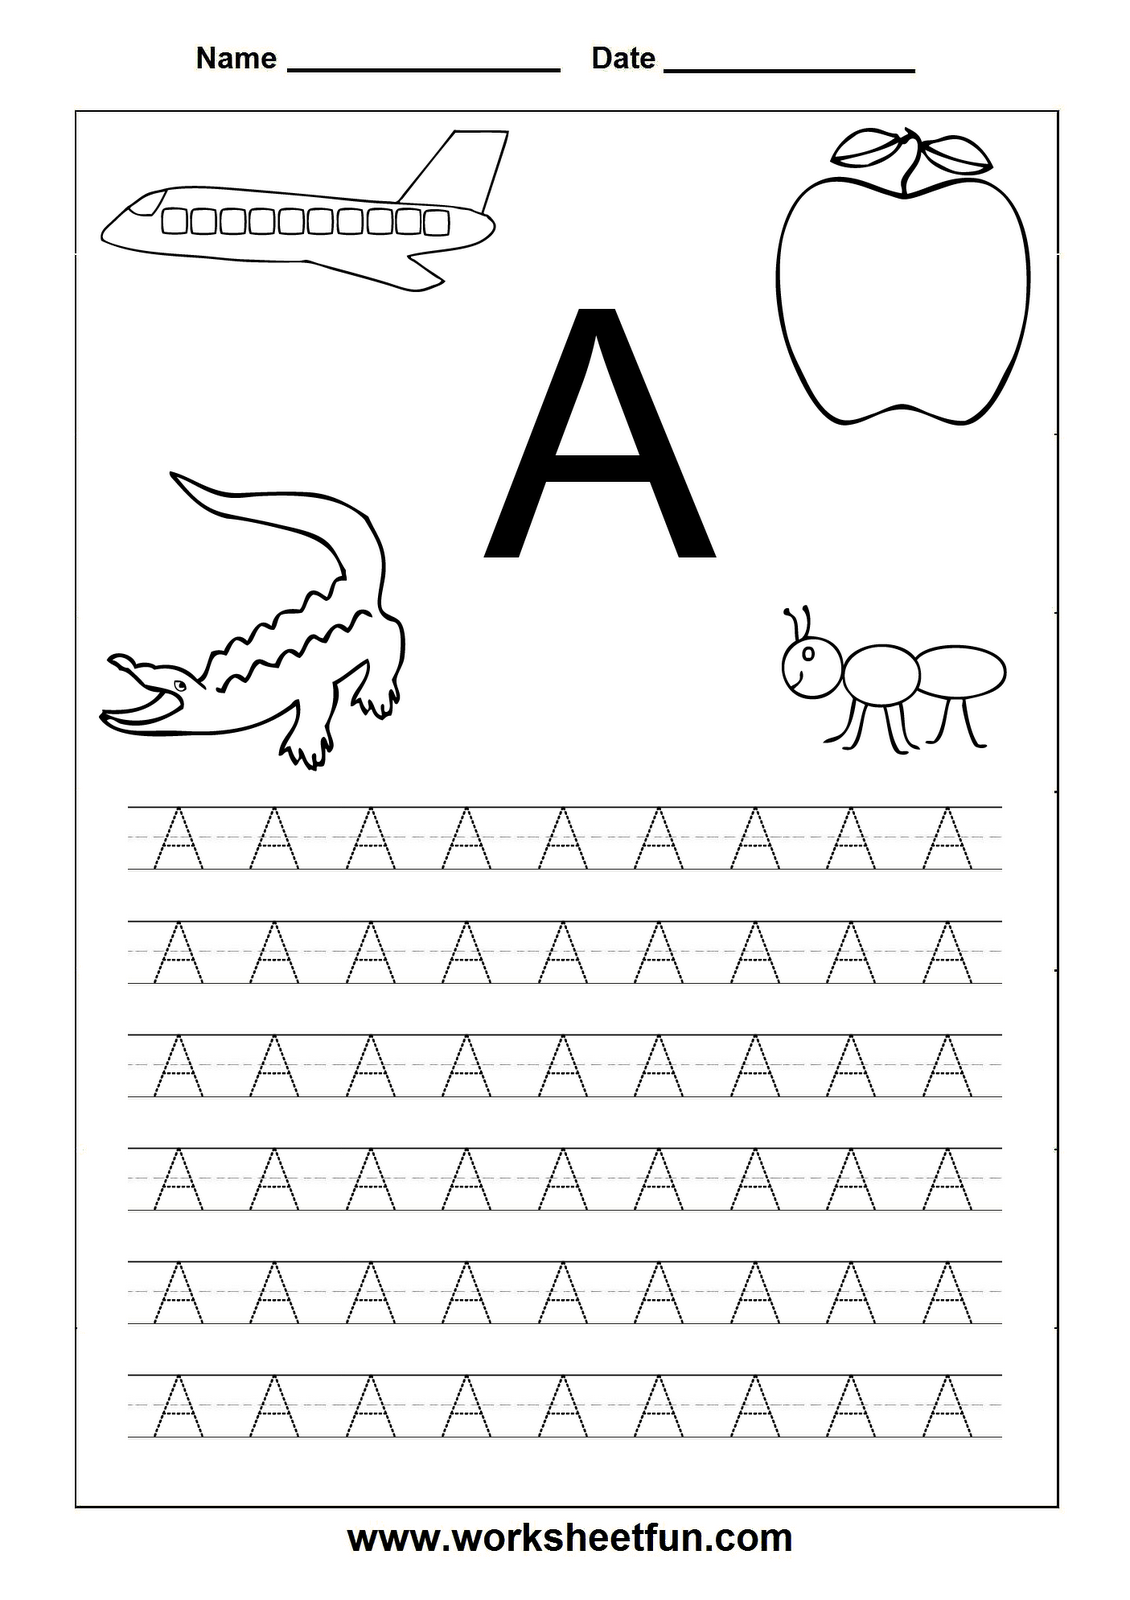 Worksheets Abc Writing Worksheets a z capital letter tracing worksheets there are plenty more on various subjects on